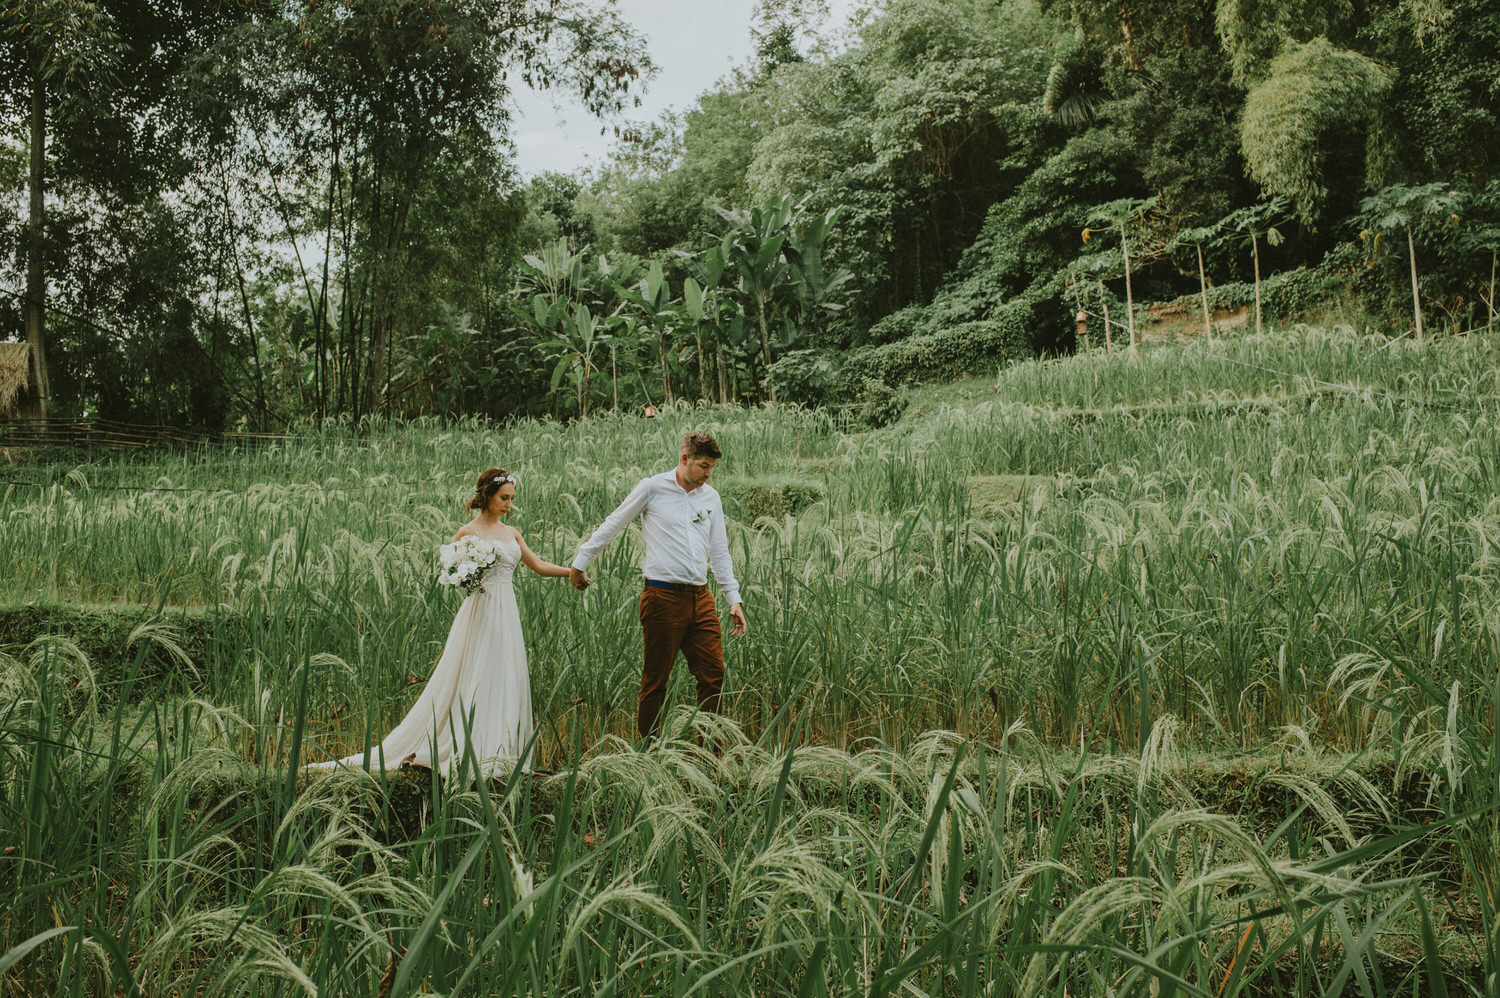 bali-wedding-ubud-wedding-wedding-destination-diktatphotography-kadek-artayasa-elaine-and-glenn-095